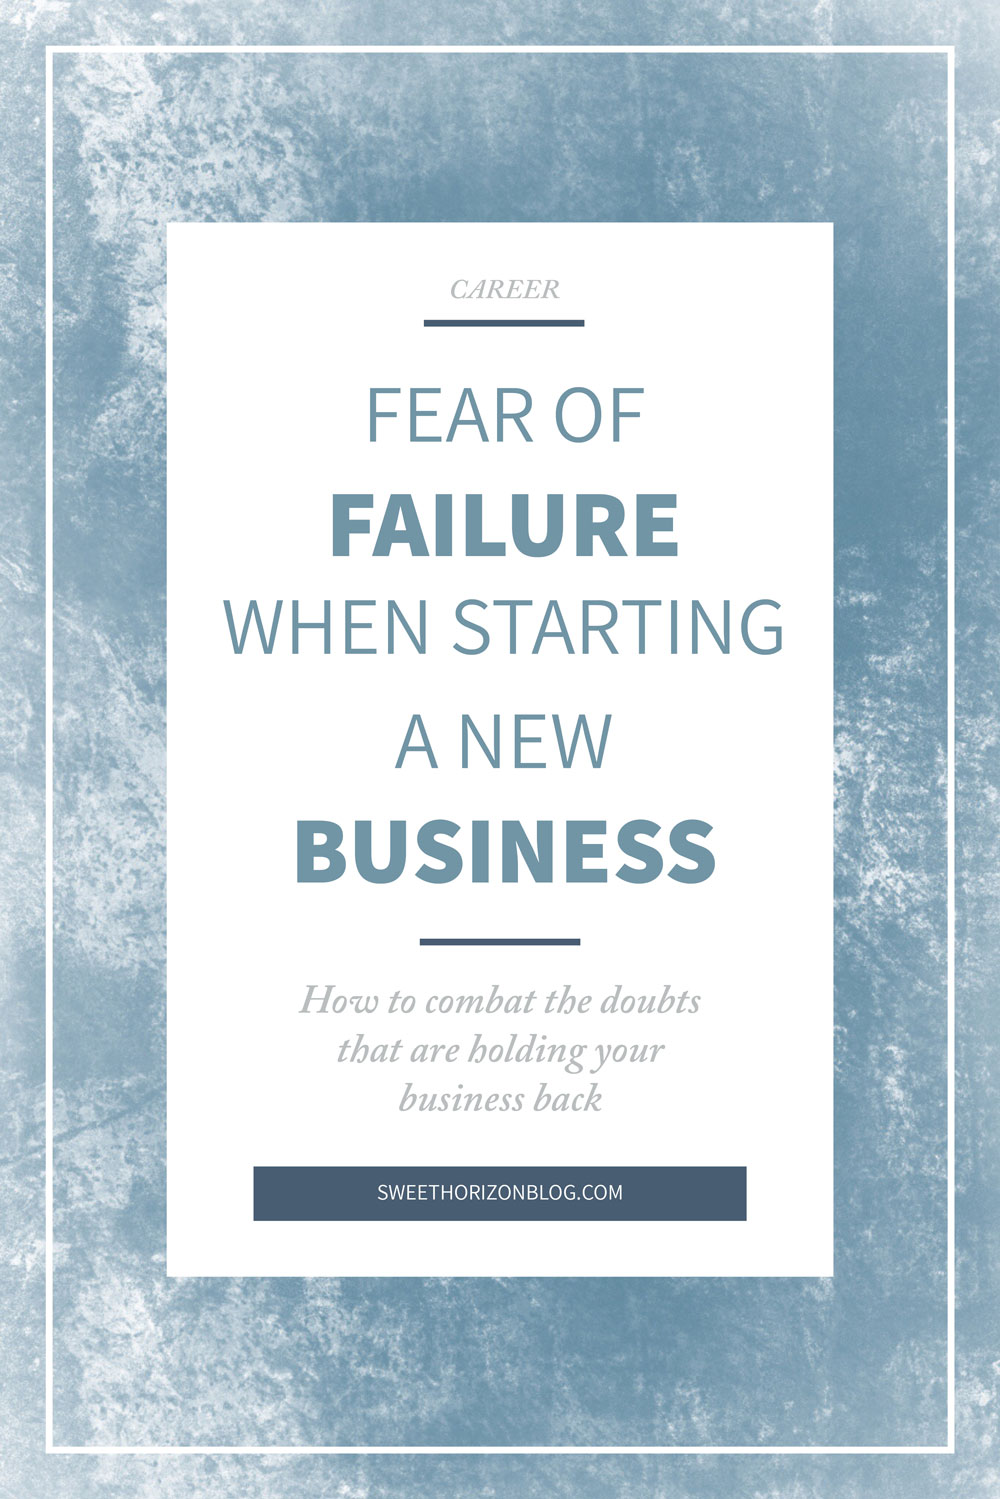 Fear of Failure When Starting a New Business from www.sweethorizonblog.com